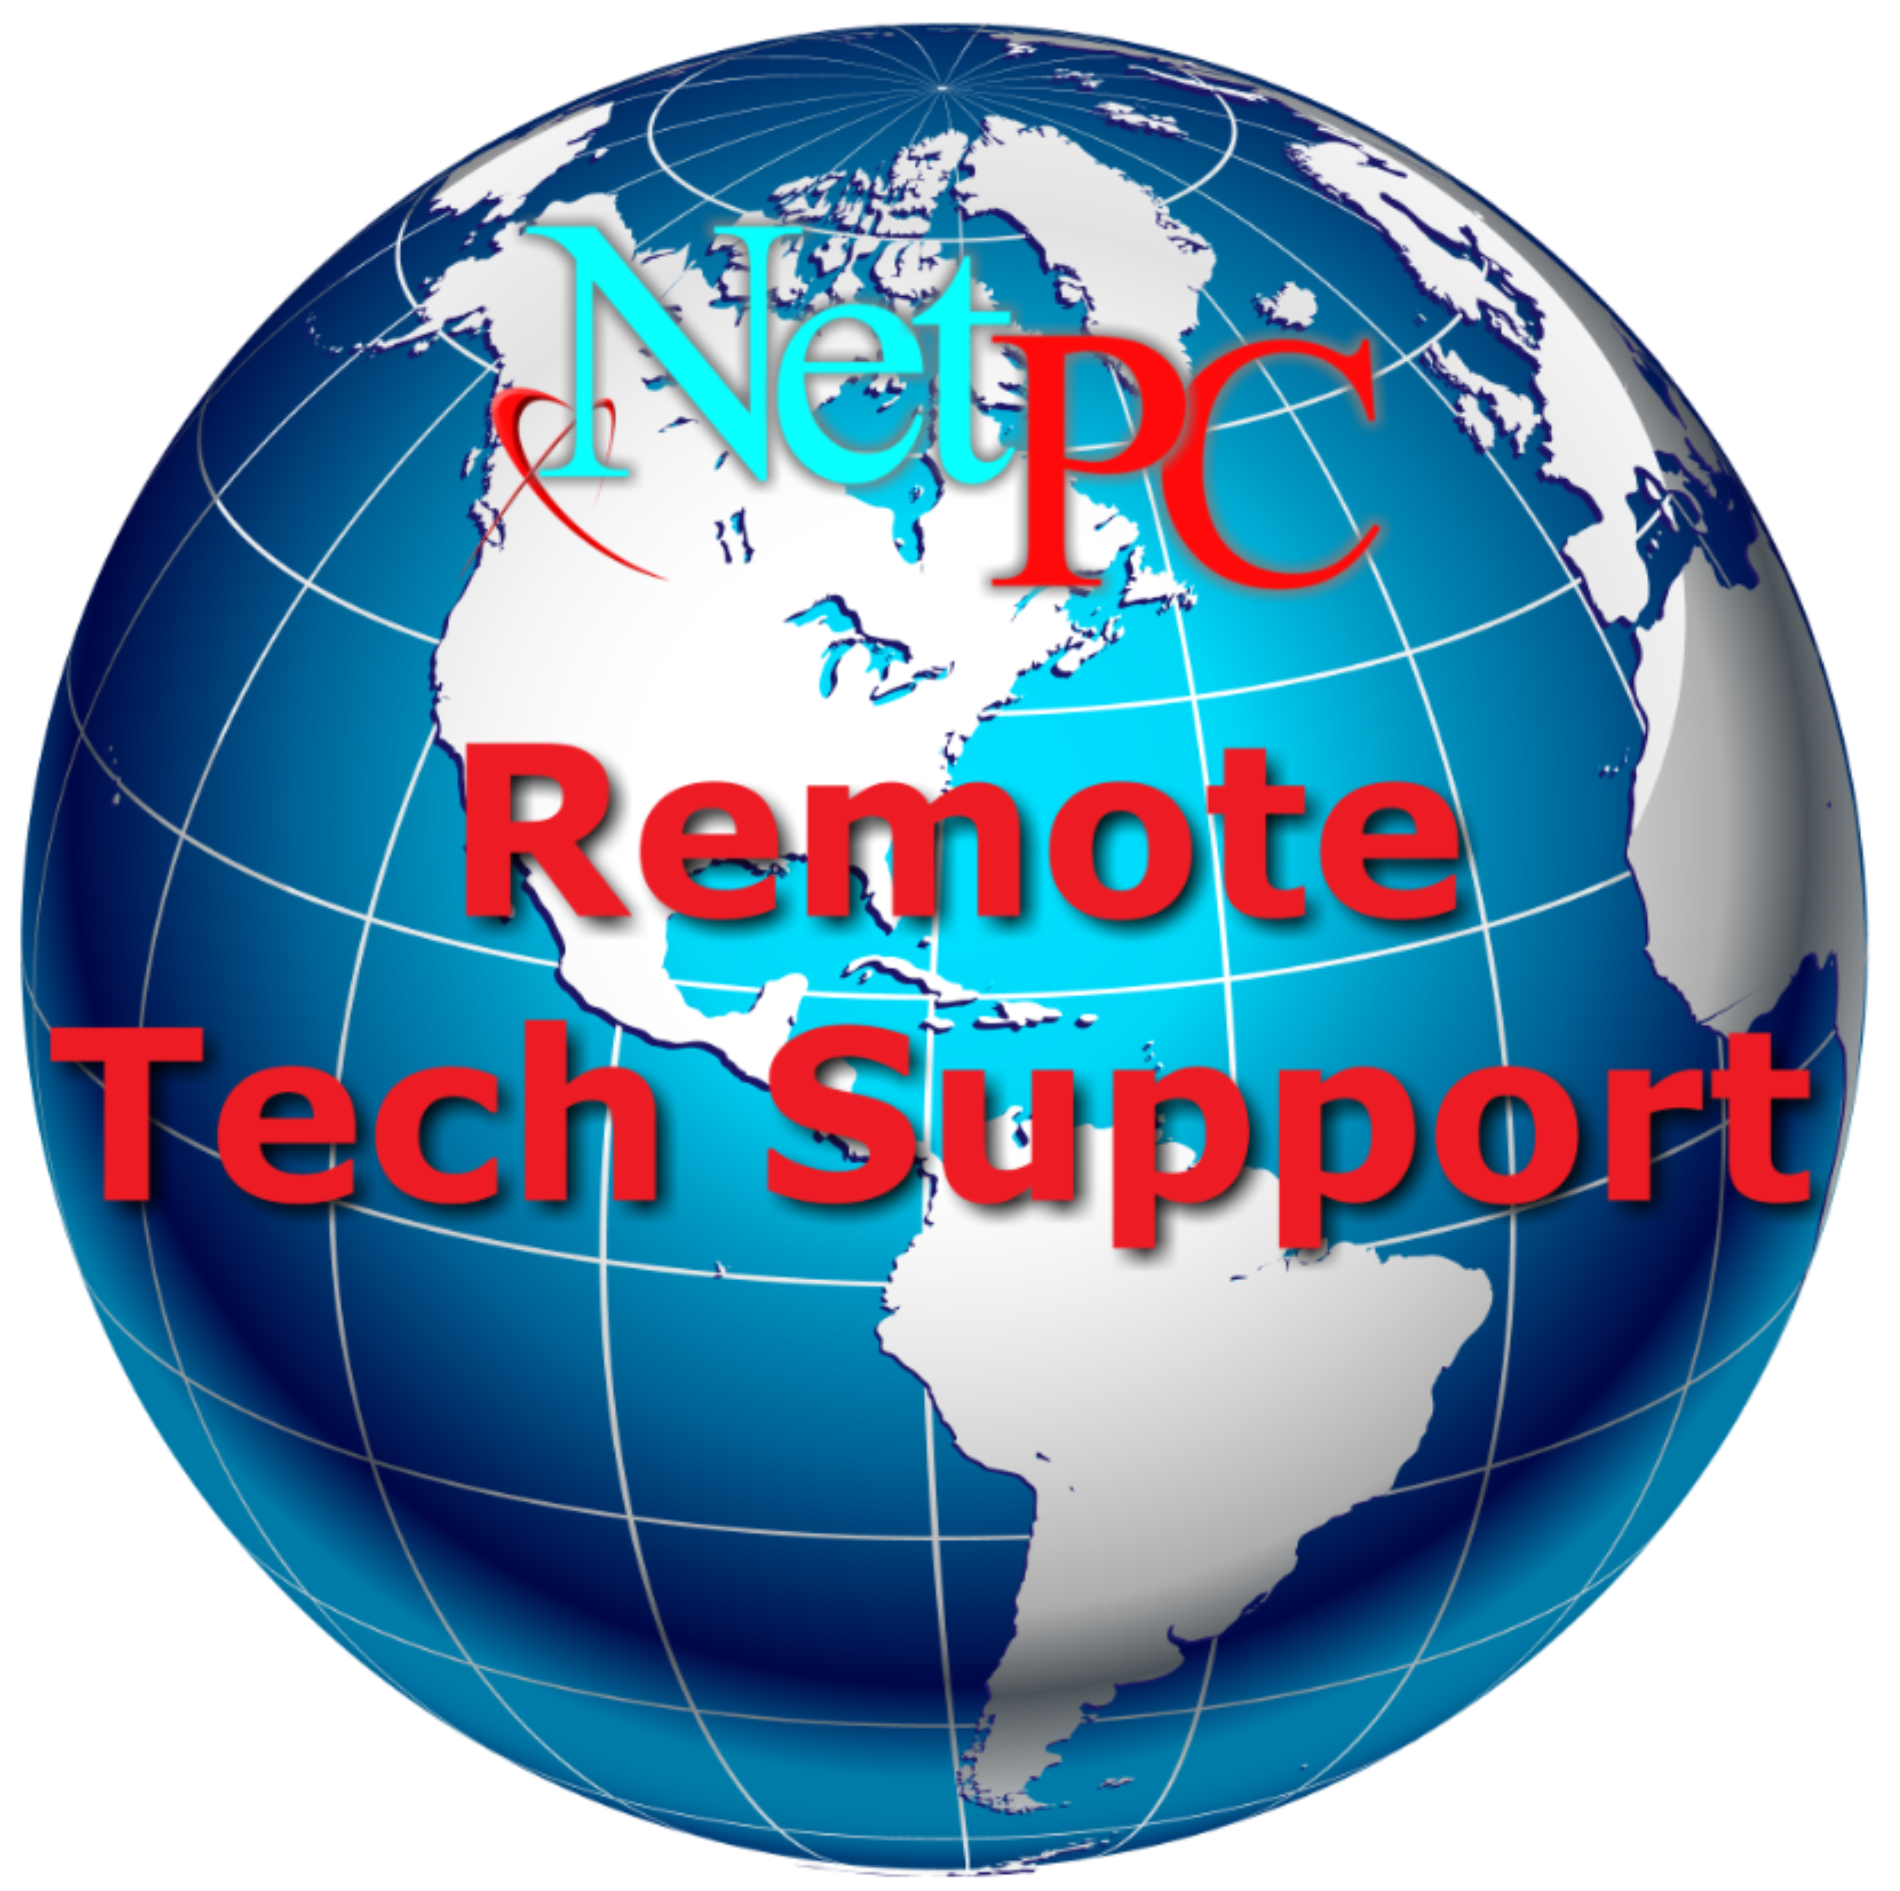 Remote support is a cost-effective technology that allows a technician to service  your computer from a remote location. We will securely connect to your computer and be able to service it quickly and effectively. Remote support is useful in many ways, particularly when it comes to saving time. All you need is an Internet connection.